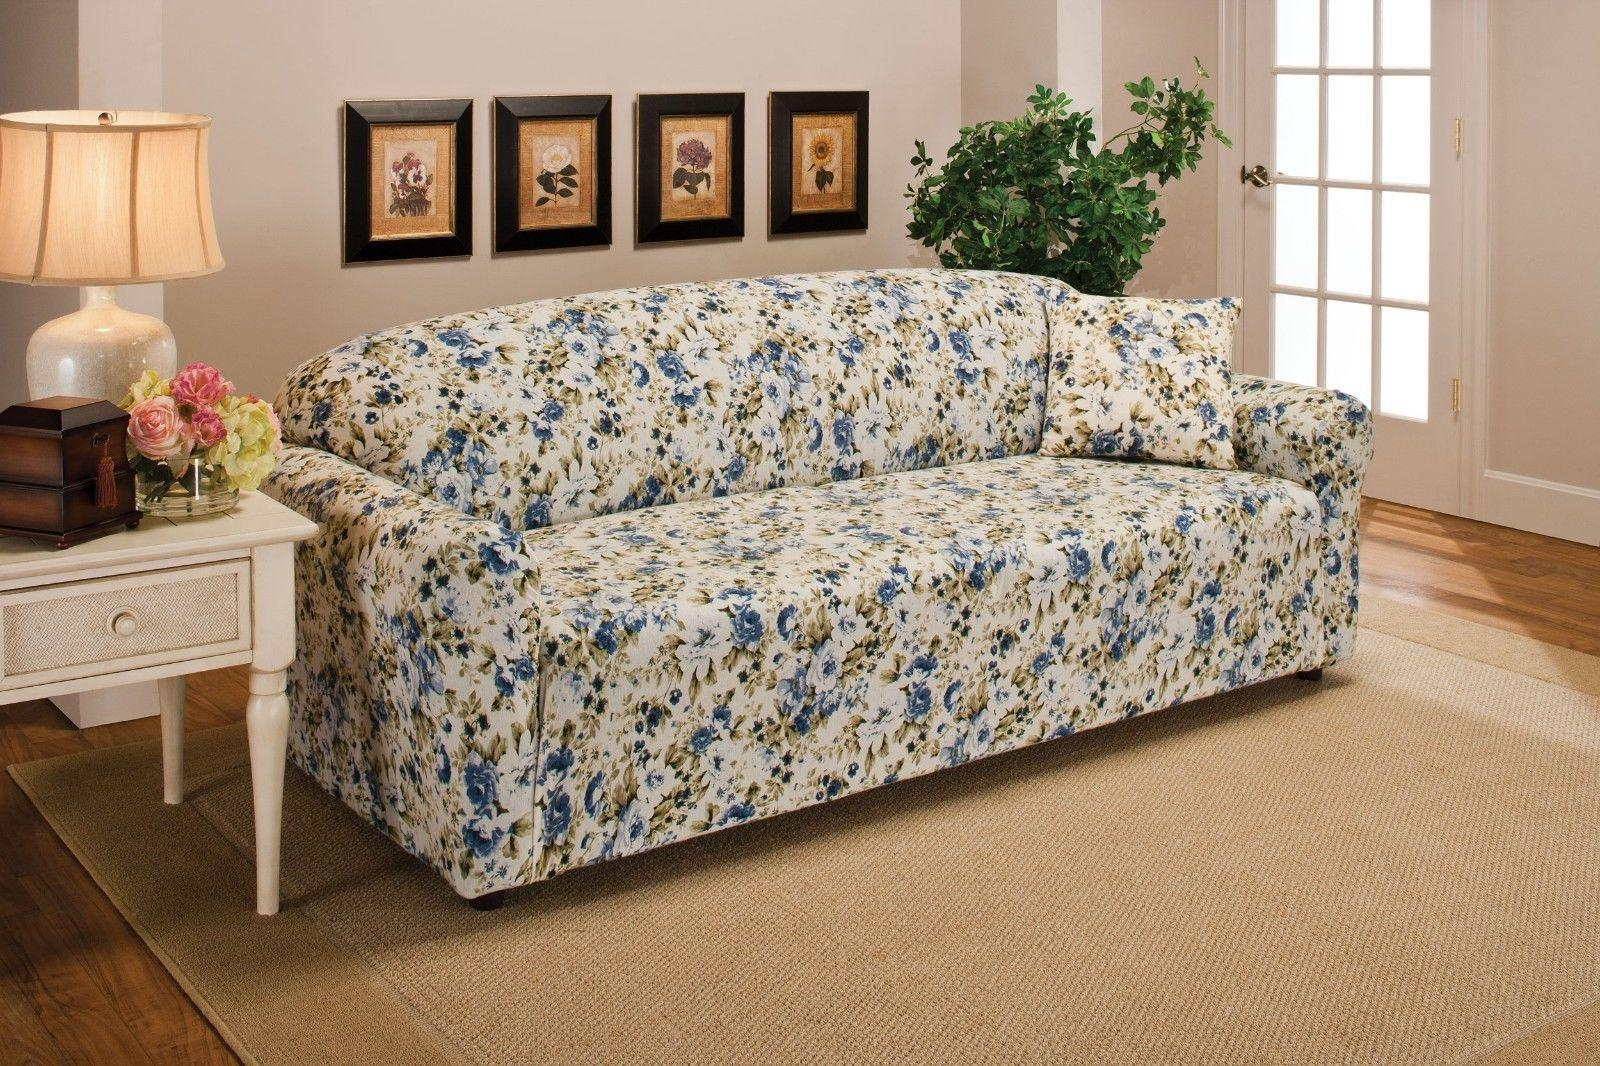 Blue Floral Flower Jersey Sofa Stretch Slipcover Couch Cover Chair Pertaining To Blue Plaid Sofas (View 11 of 20)